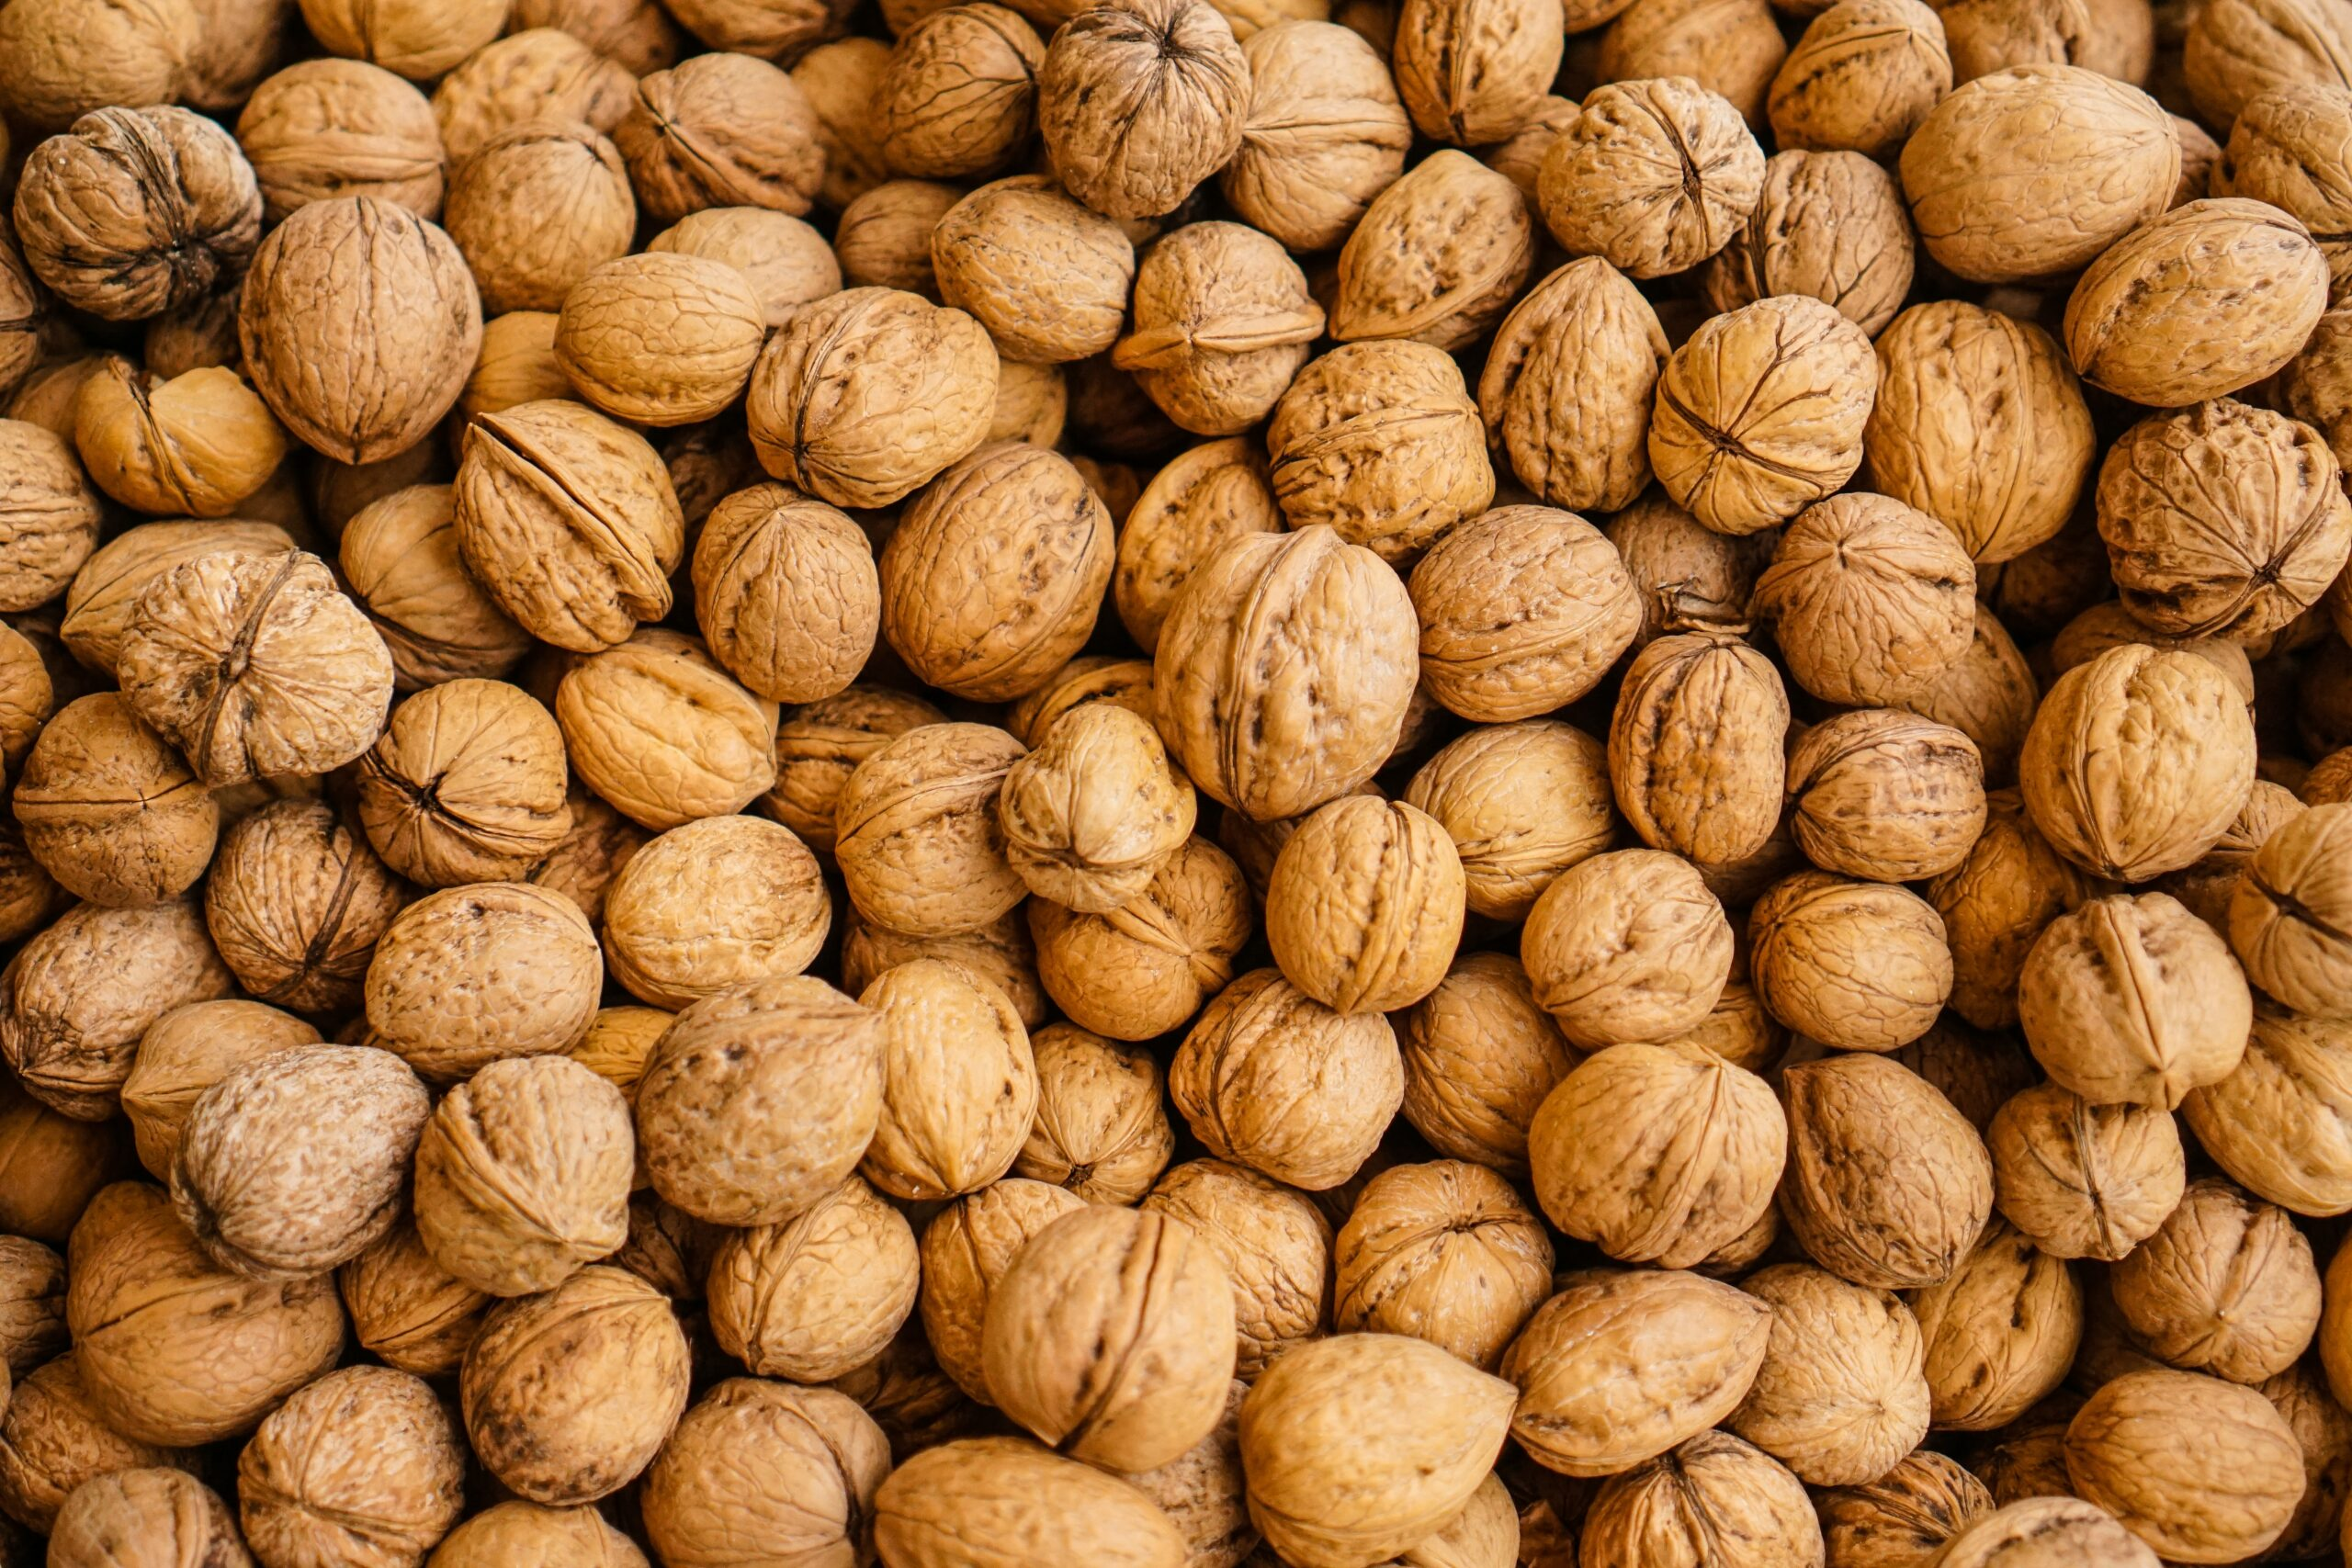 closeup photography of walnuts